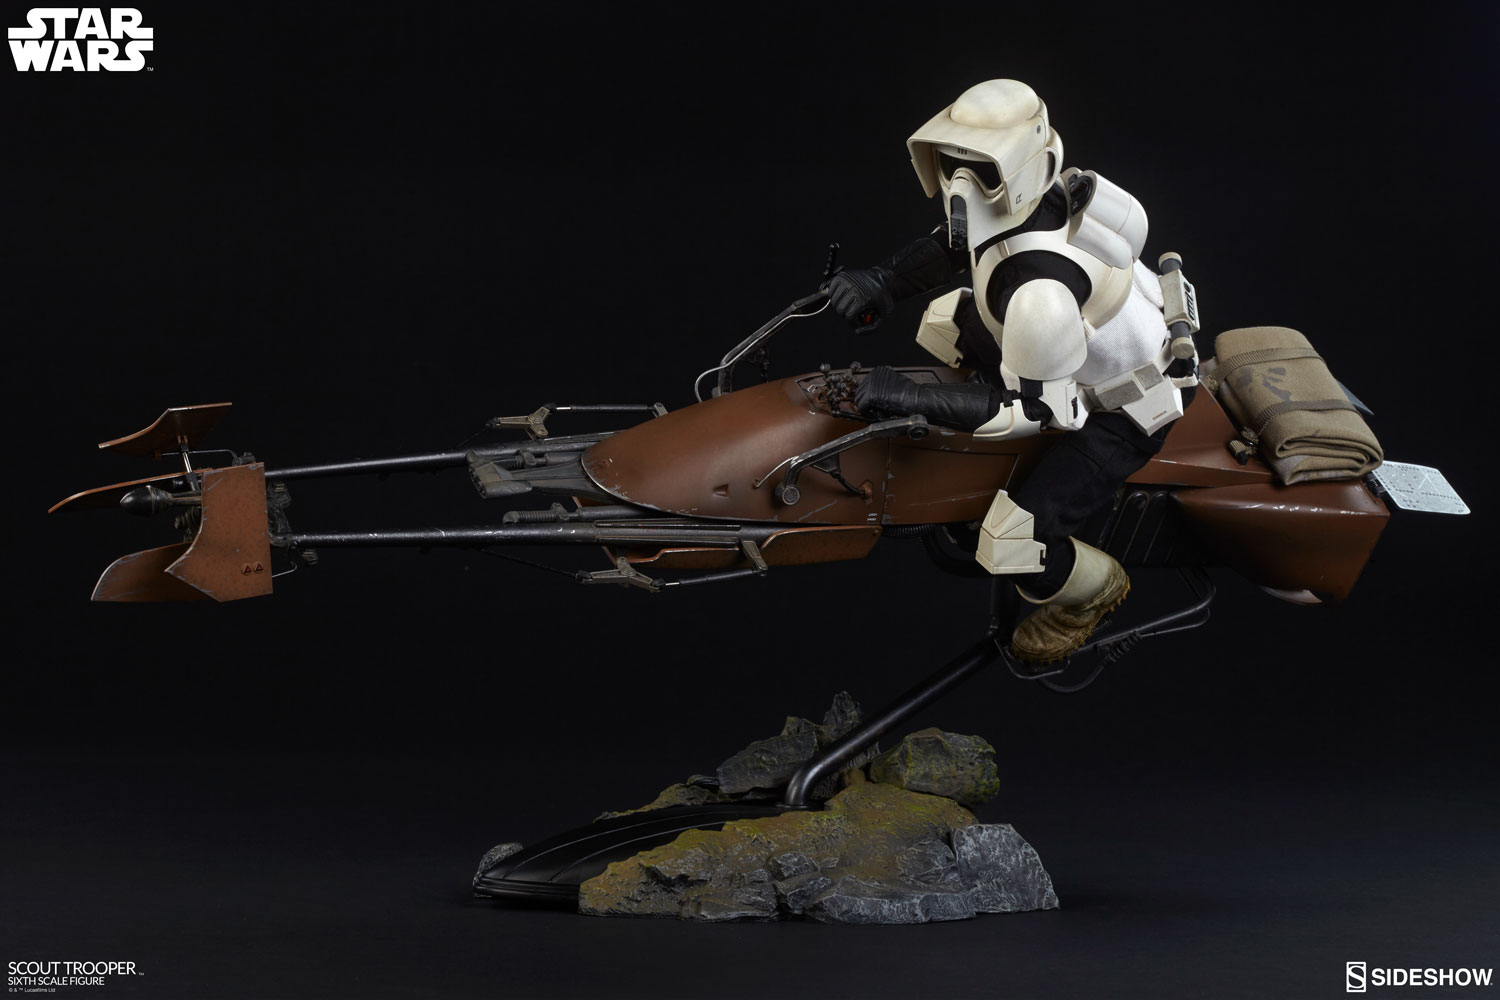 ROTJ-Imperial-Scout-Trooper-1:6th-Scale-Figure-05